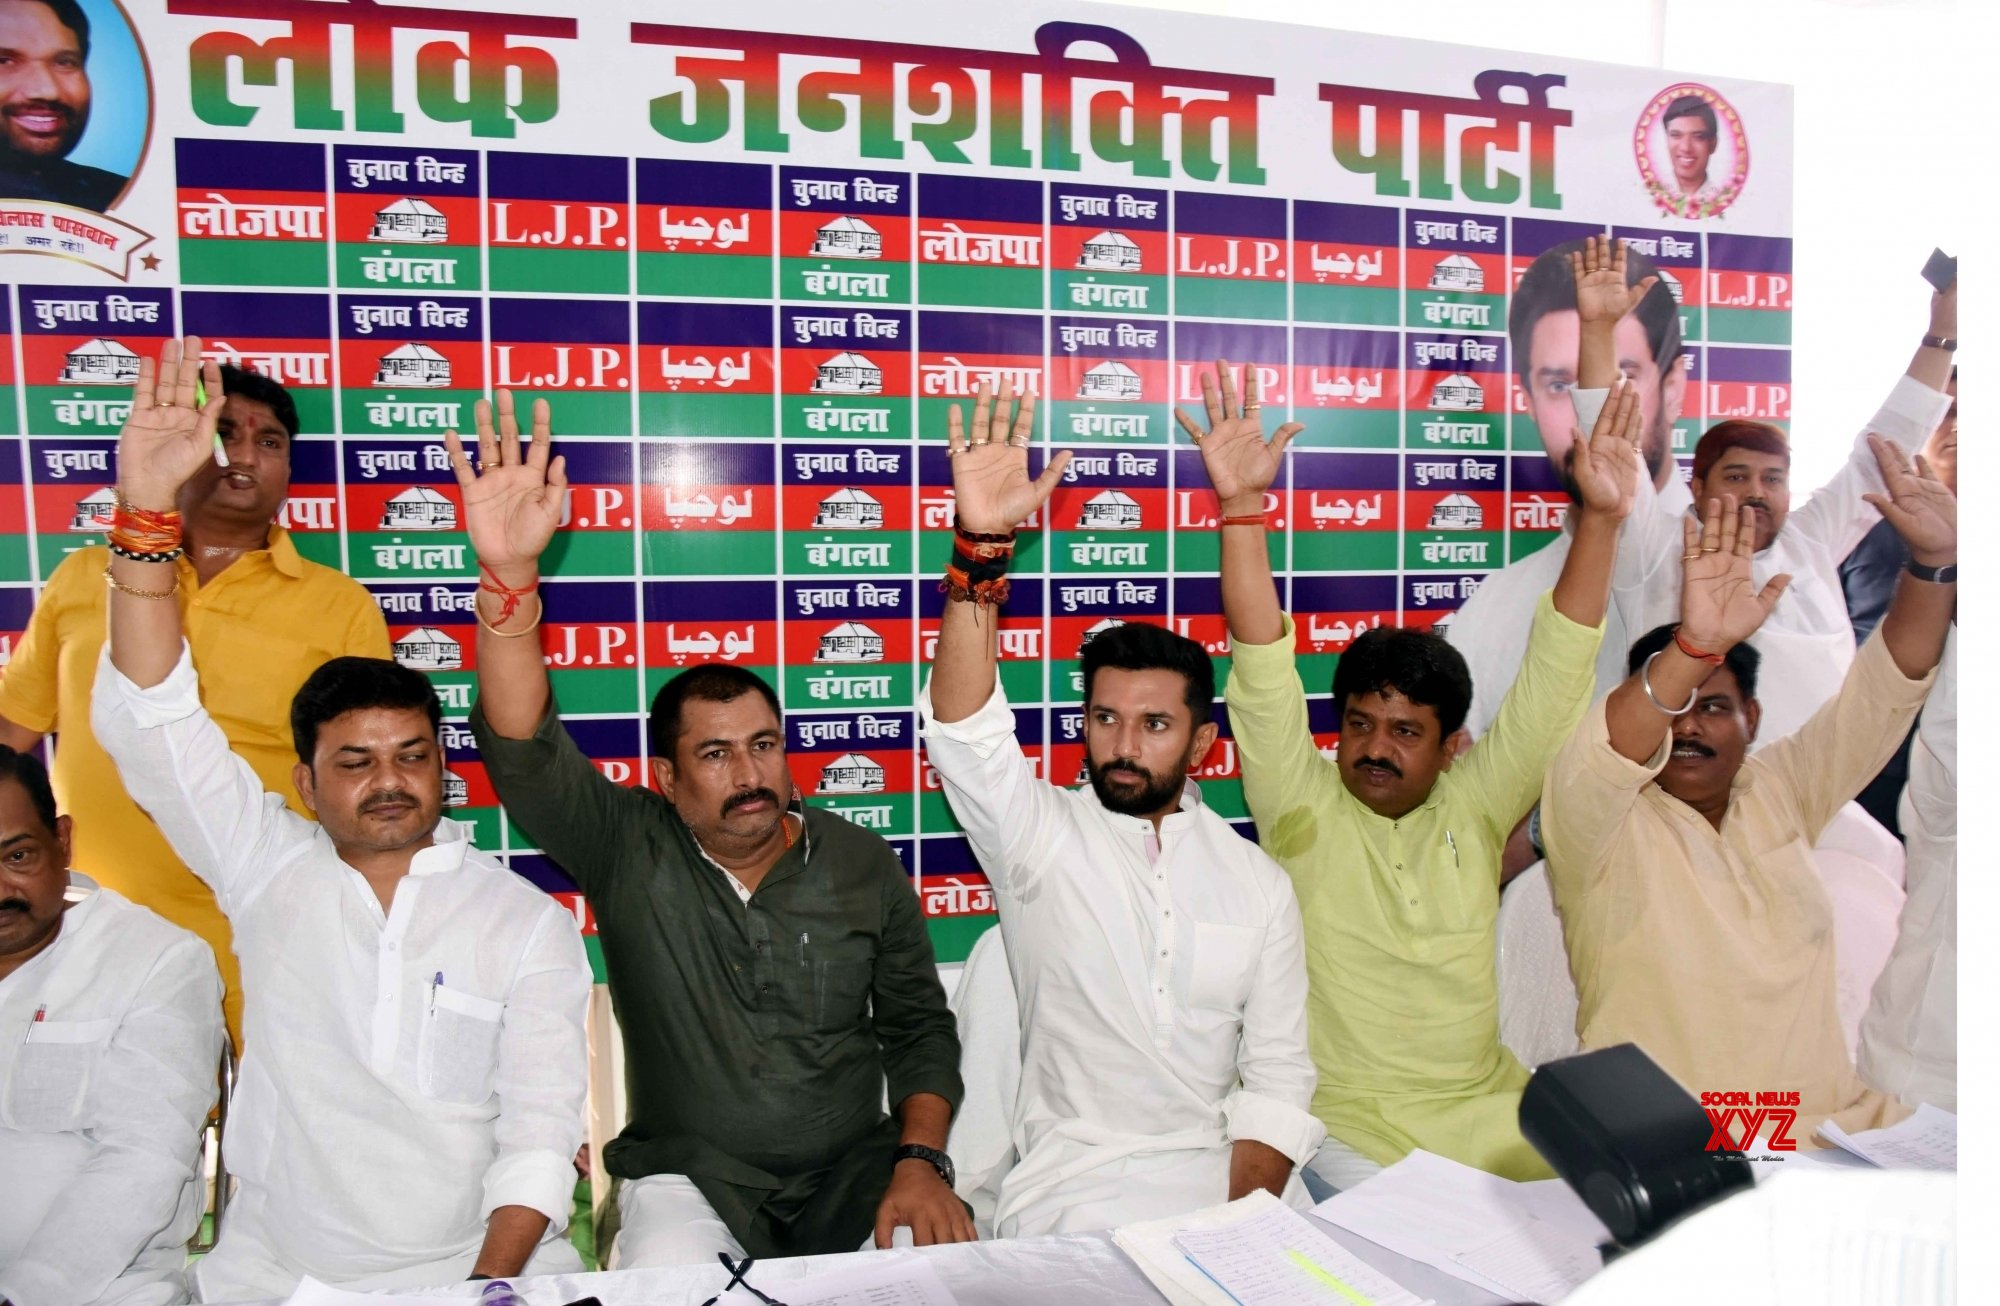 Patna: LJP leader - Chirag Paswan along with District President and others meet at his residence in Patna. #Gallery